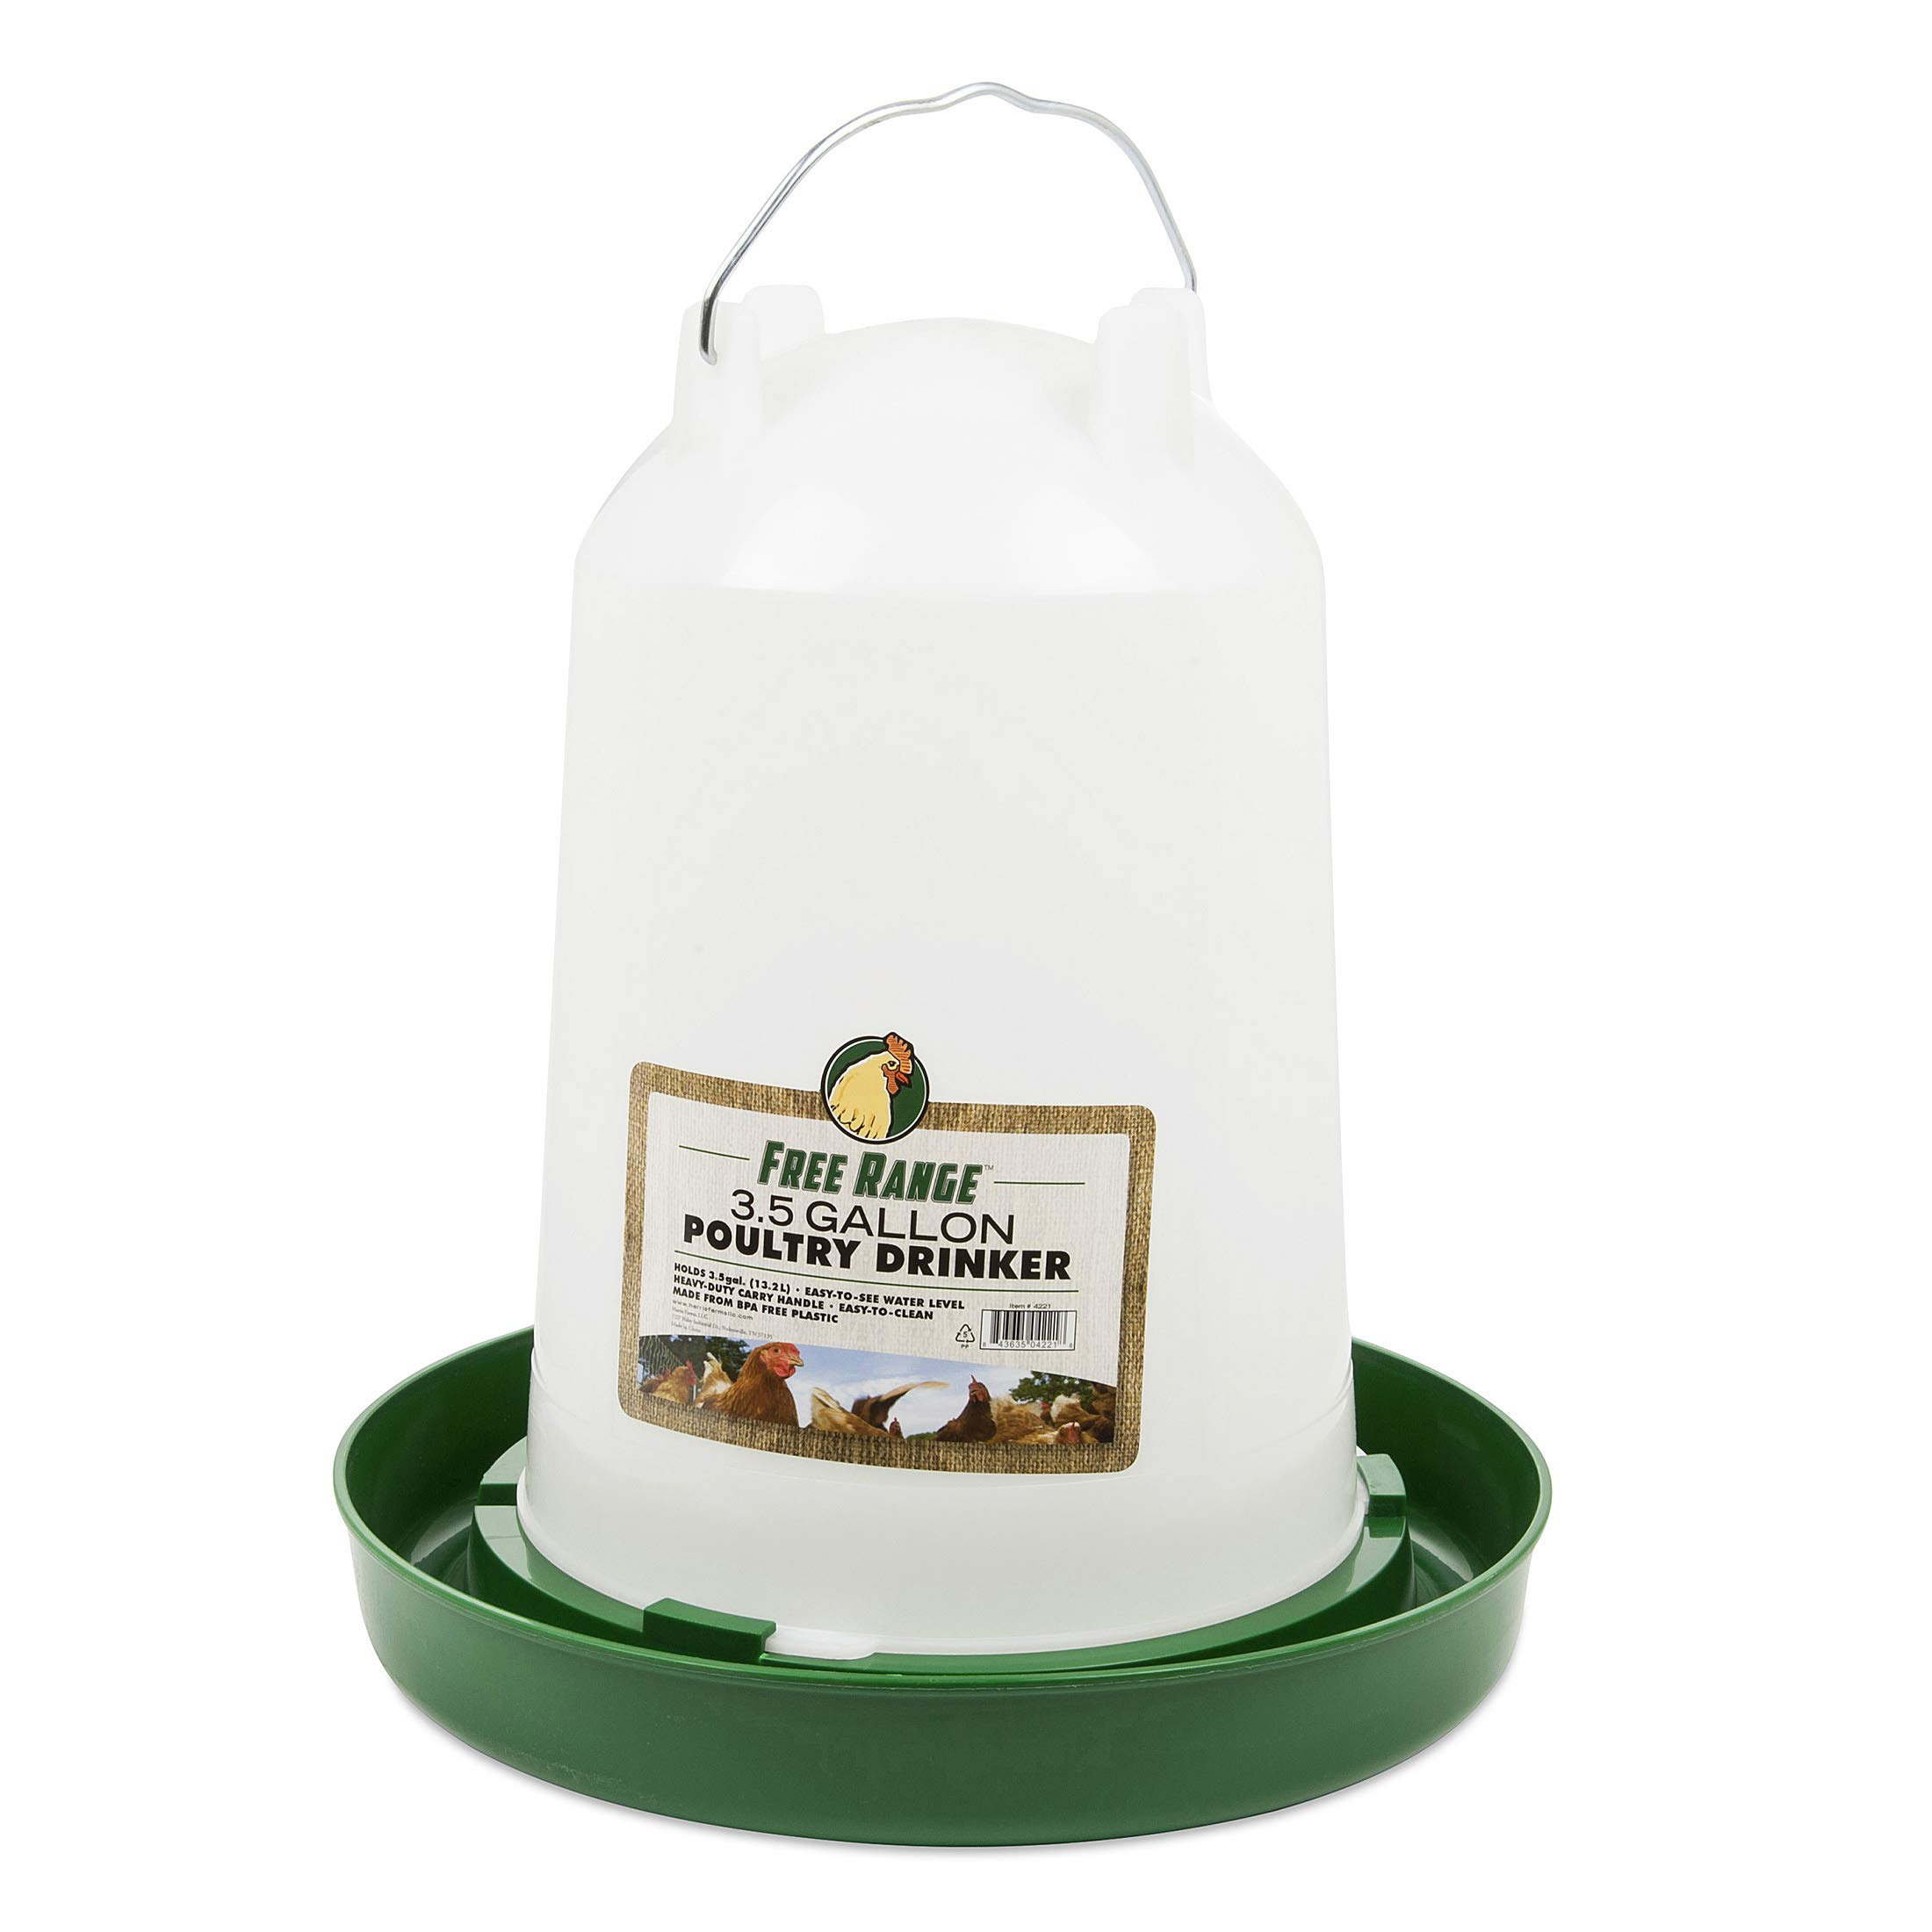 Harris Farms Hanging Poultry Drinker, 3.5 Gallon by Harris Farms